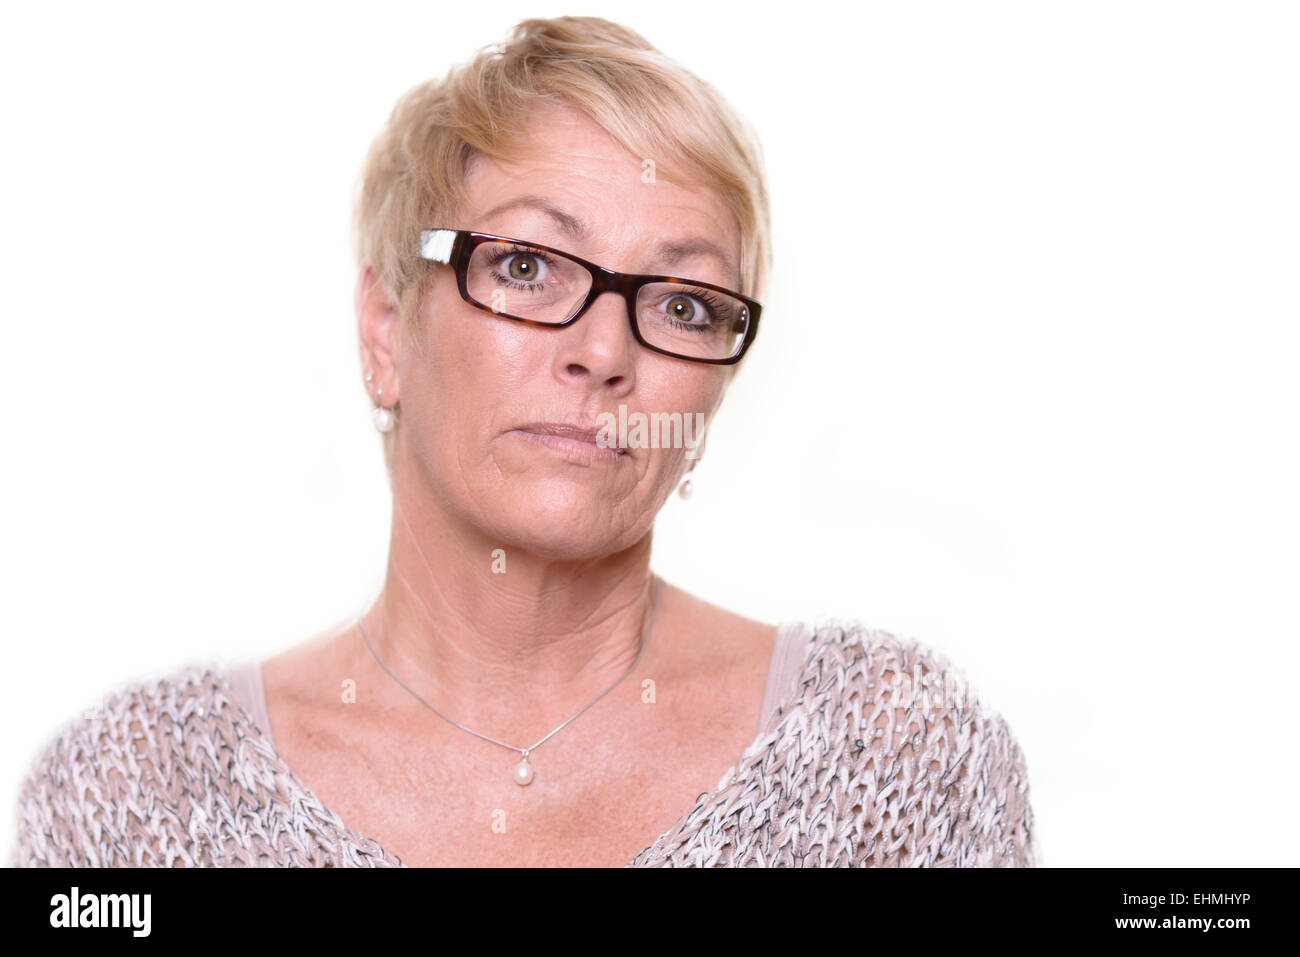 Distrustful stern middle-aged woman wearing glasses with a serious unyielding expression looking intently at the - Stock Image